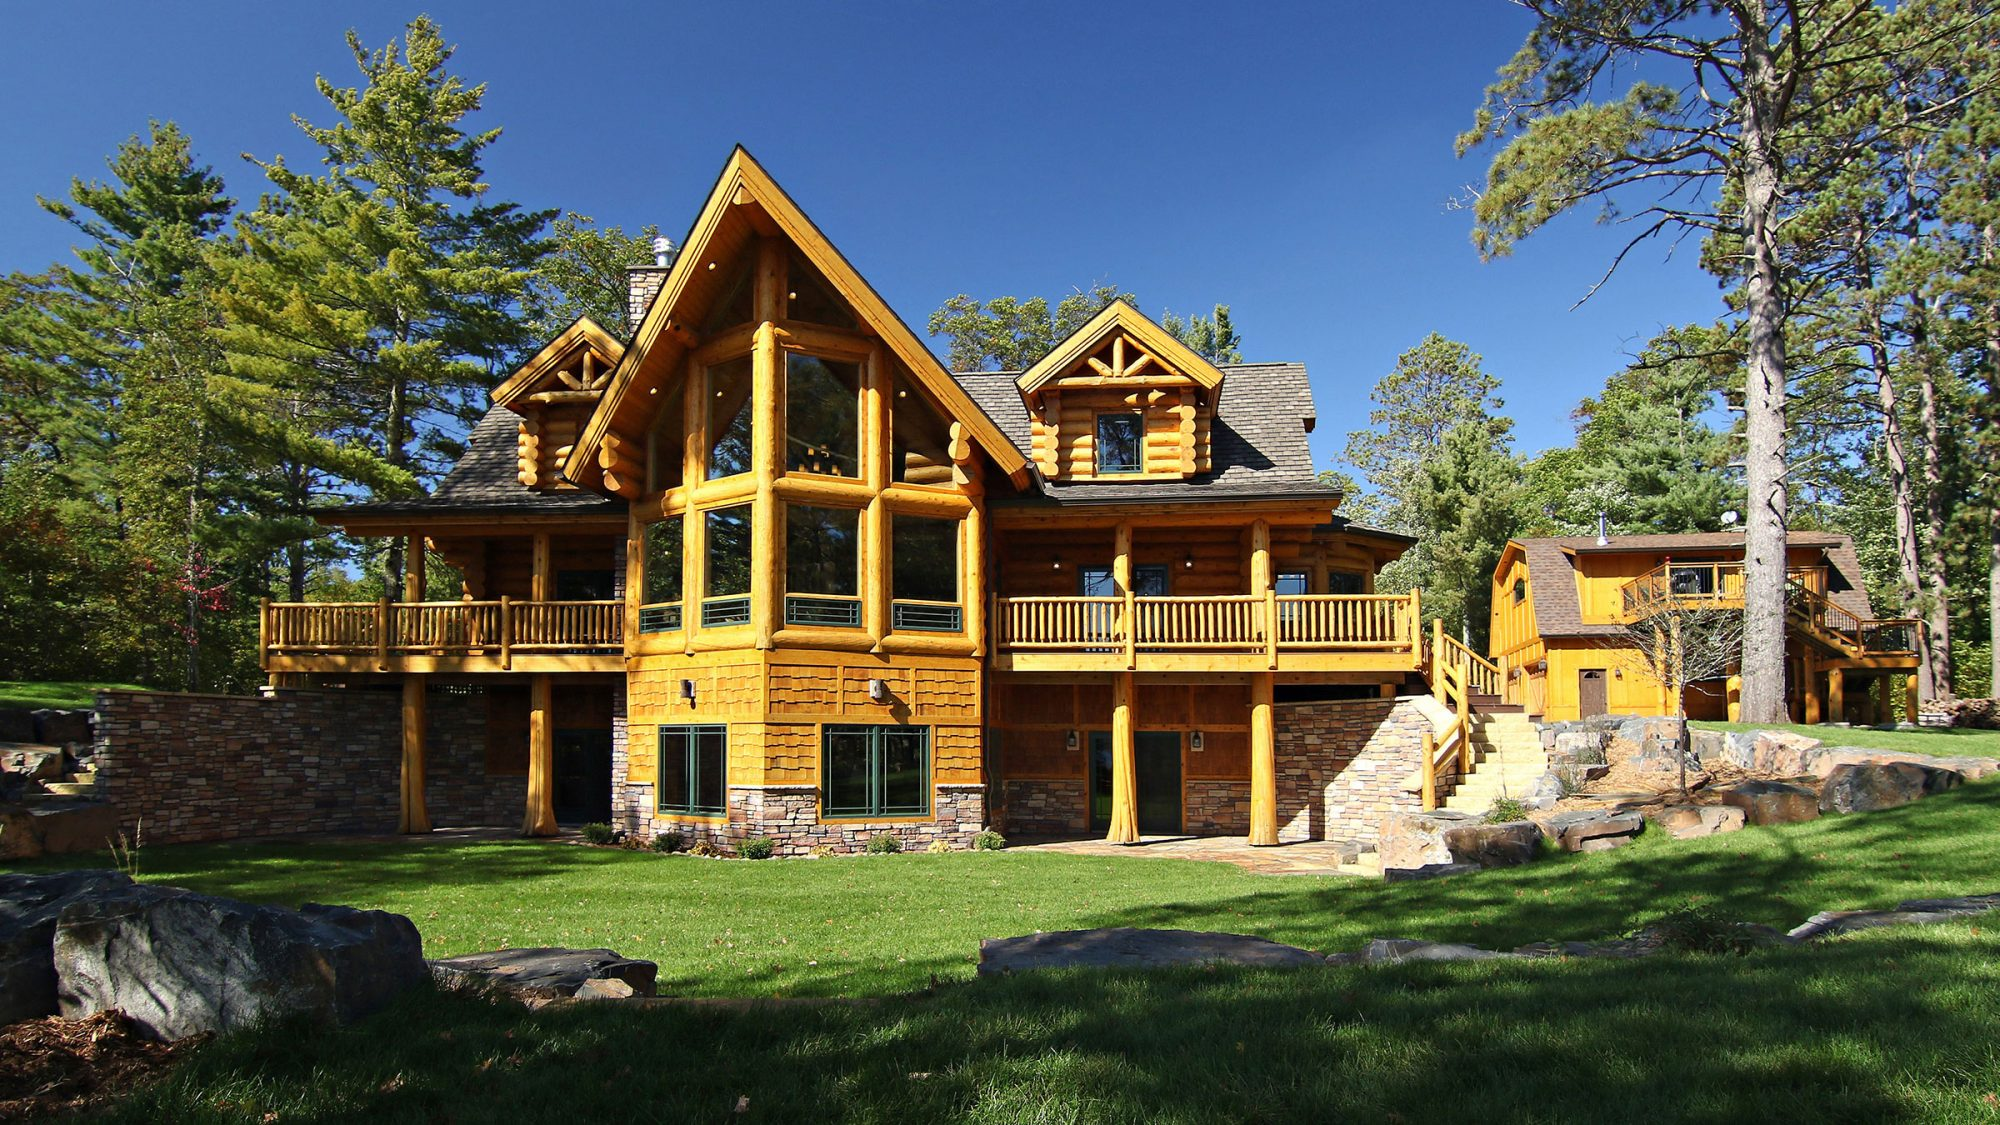 This Sprawling Log Home For Sale In Alabama Puts